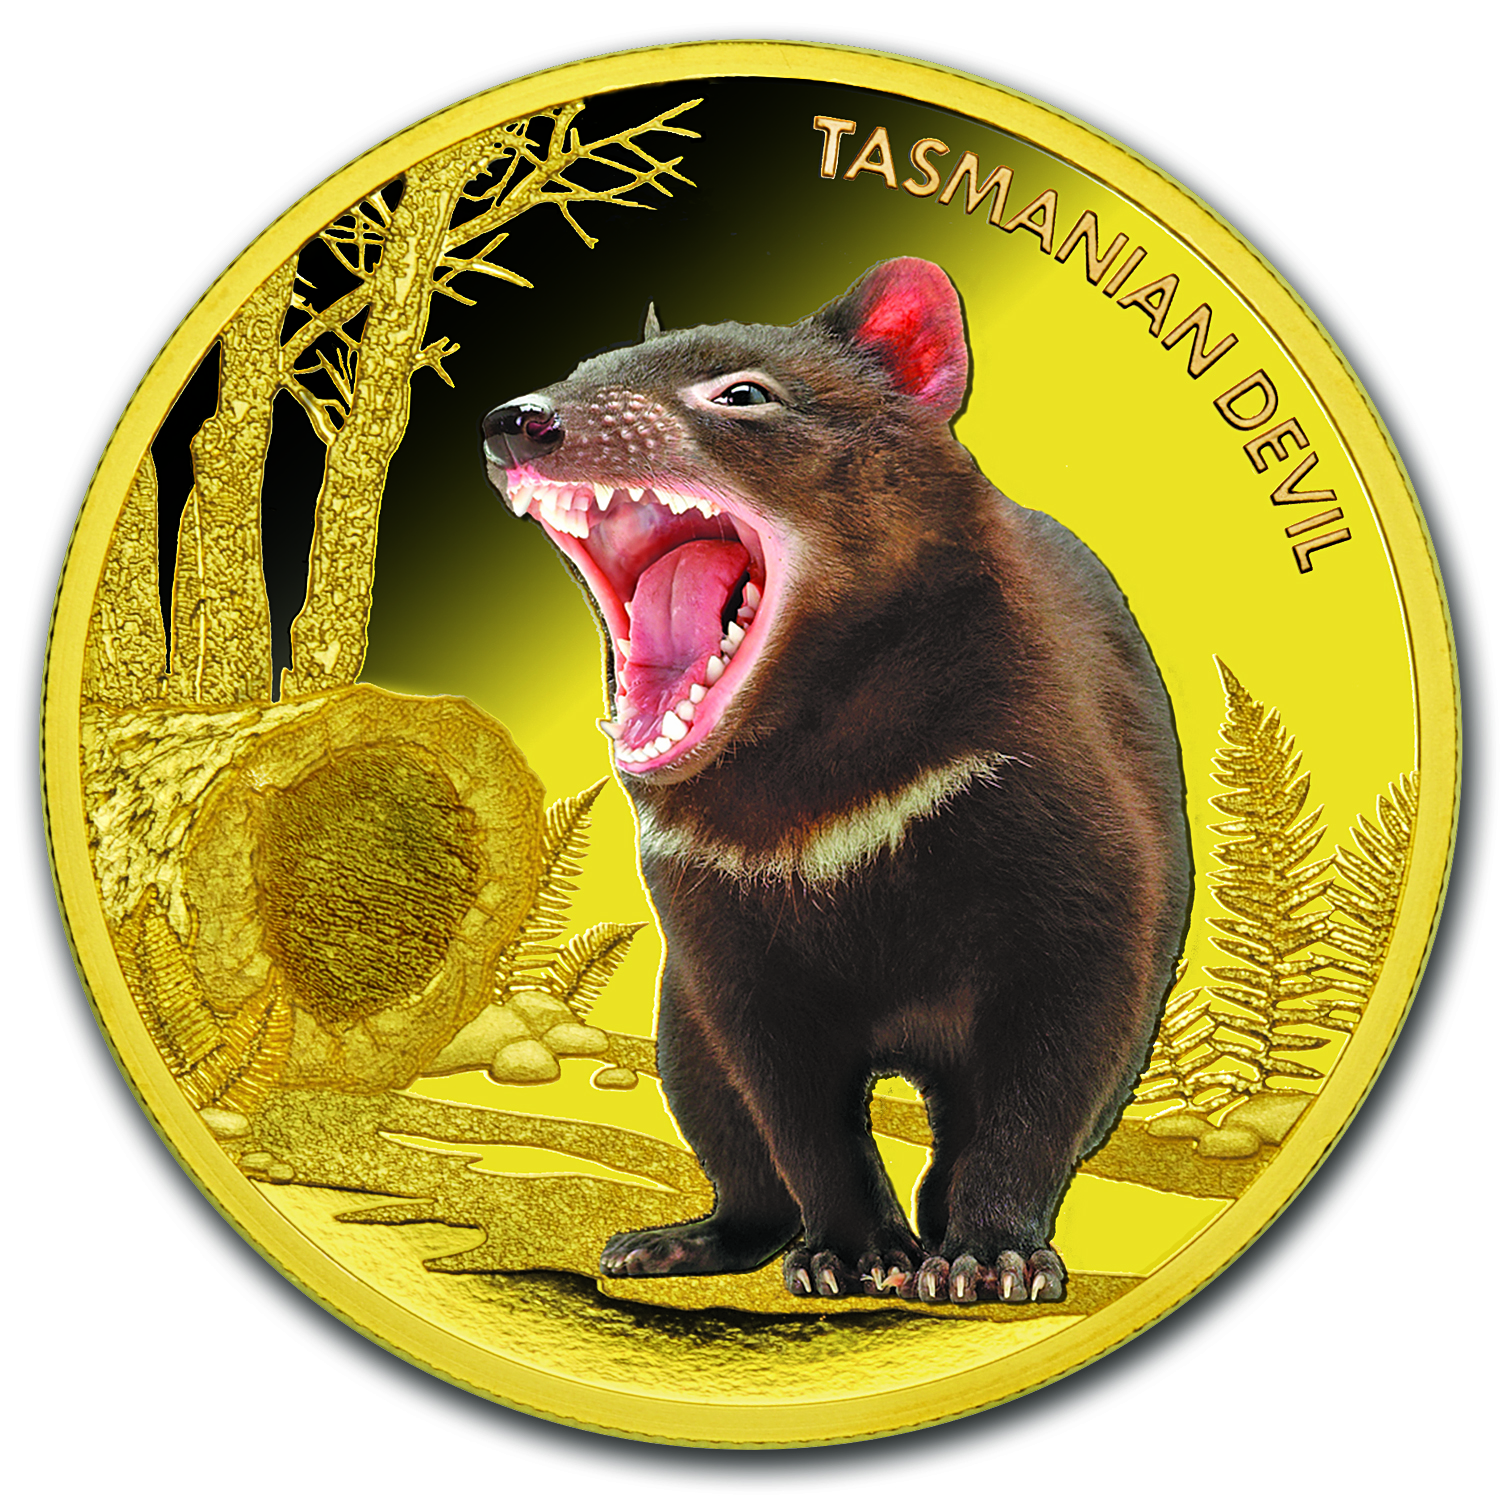 2013 1 oz Proof Gold Tasmanian Devil Endangered and Extinct